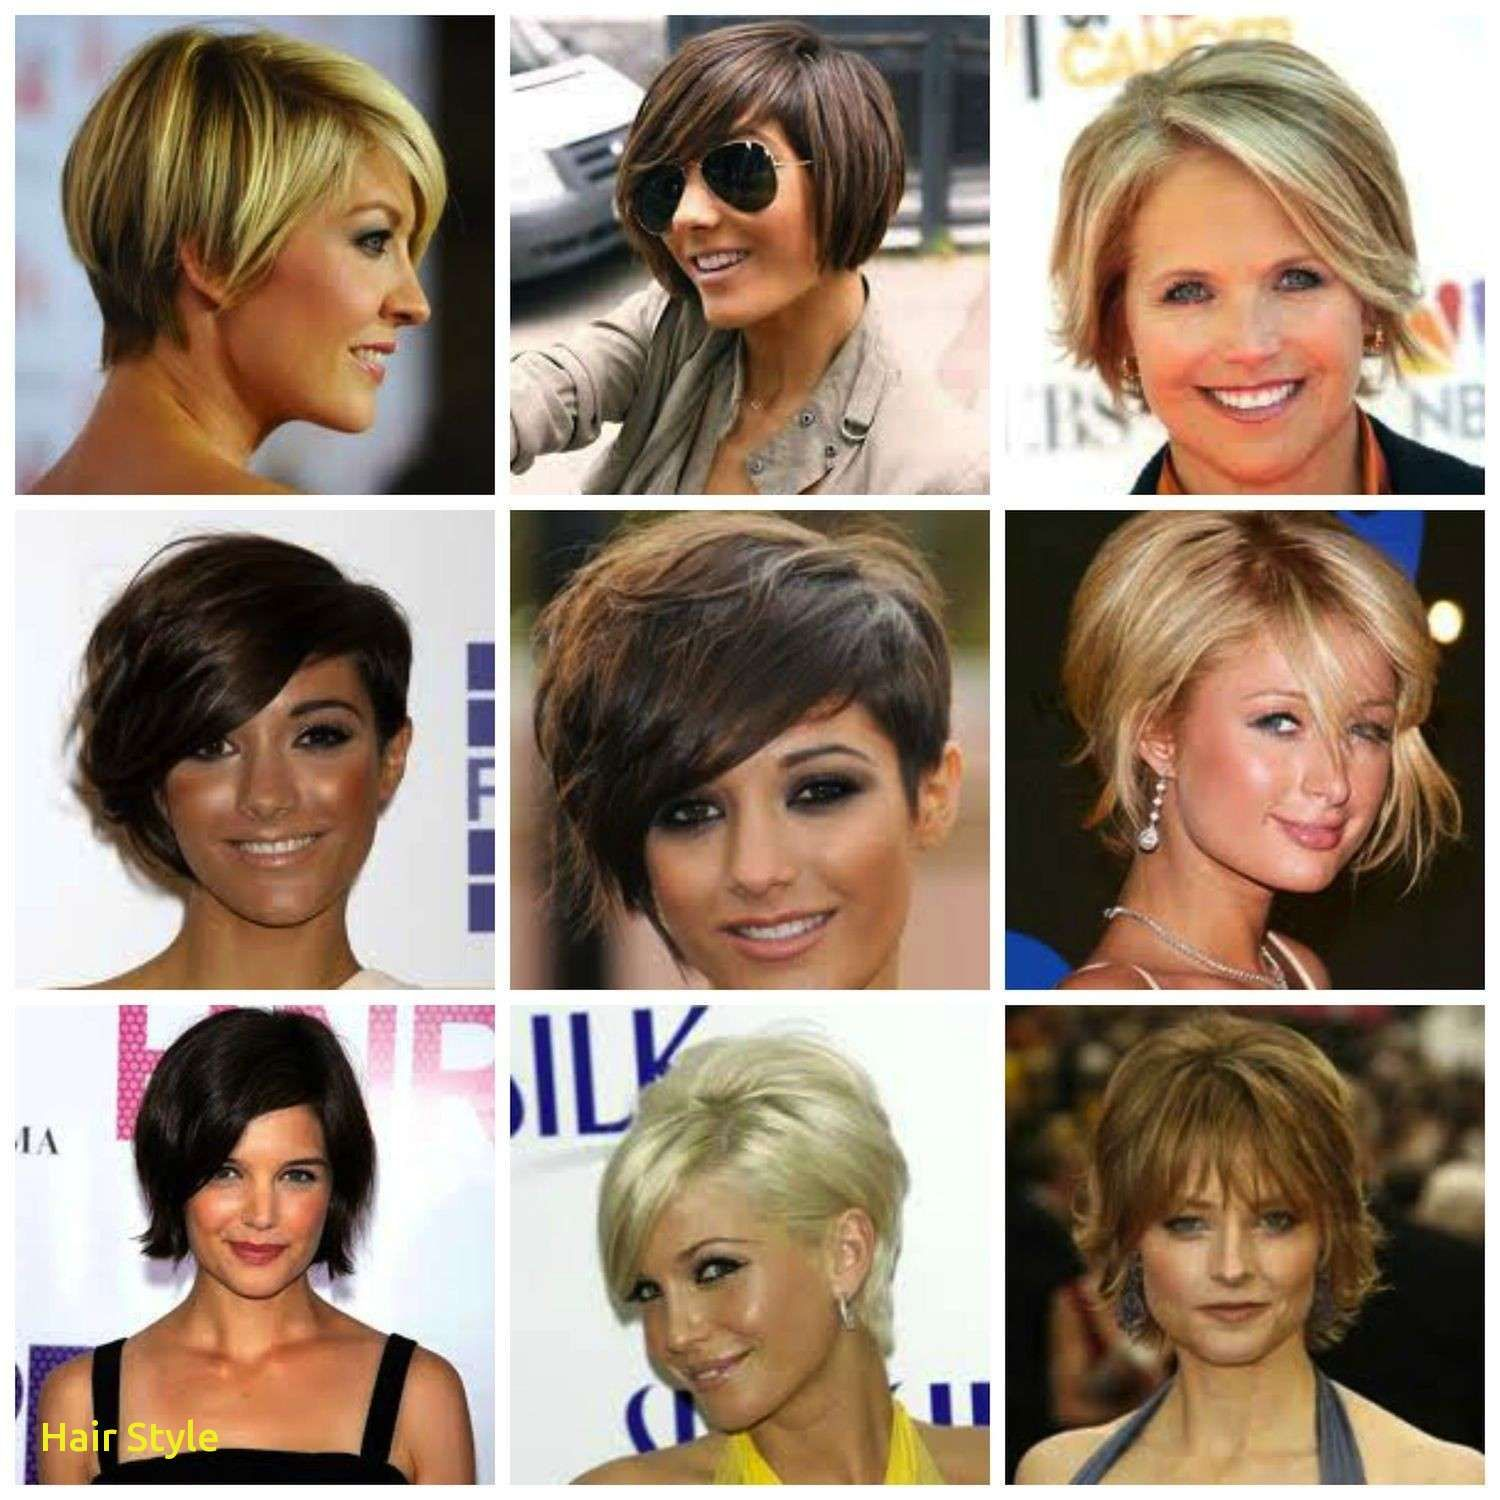 Sommer Frisuren 2016 Frauen Einzigartige Frisuren Sommer 2019 Cool Hairstyles Hair